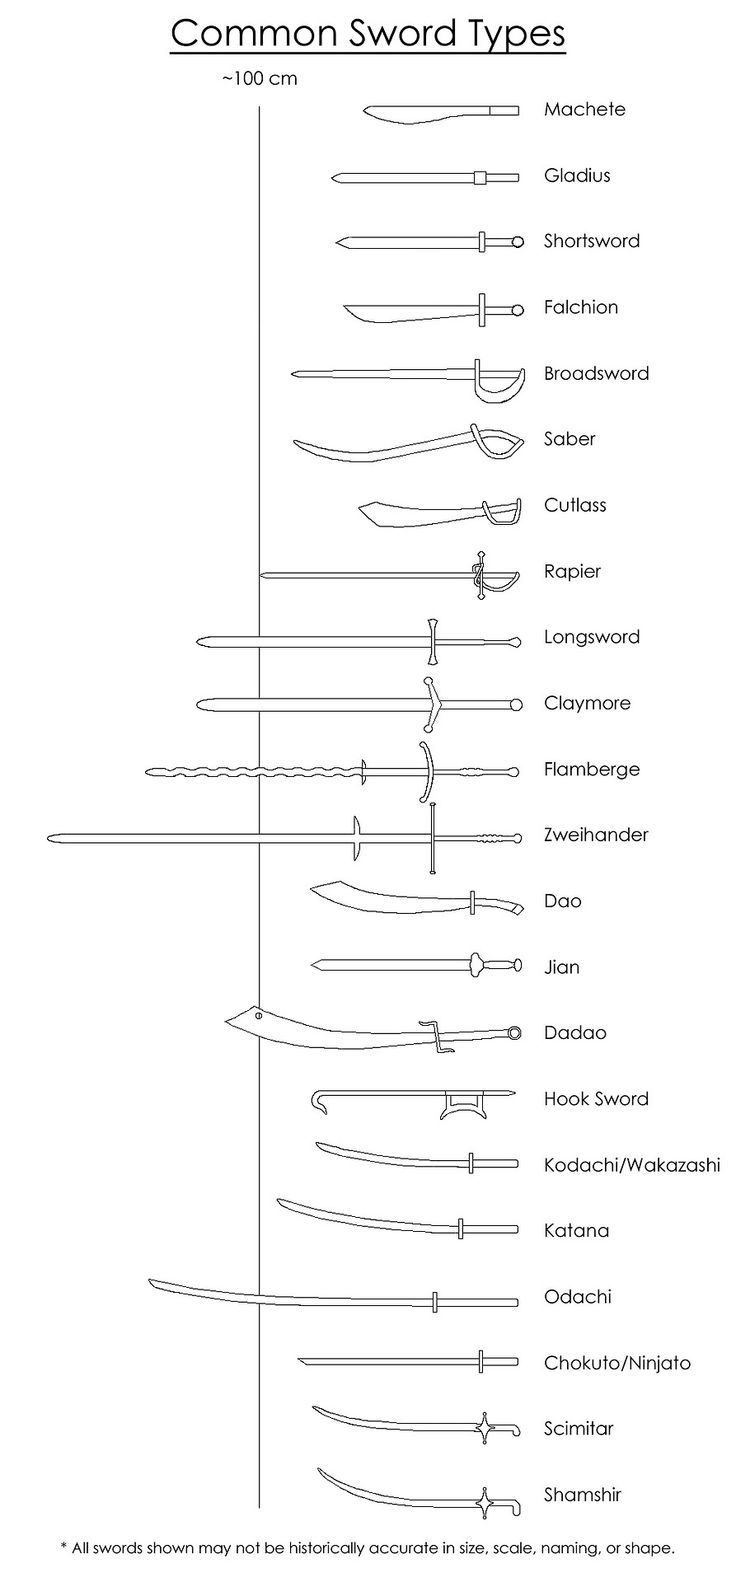 187 Best Costumes Images On Pinterest Fencing Swords And Knives Origami Sword Diagram Http Wwworigamimakecom Easyorigamisword Common Types Amazing Do You Know How Wonderfully This Is Pinning